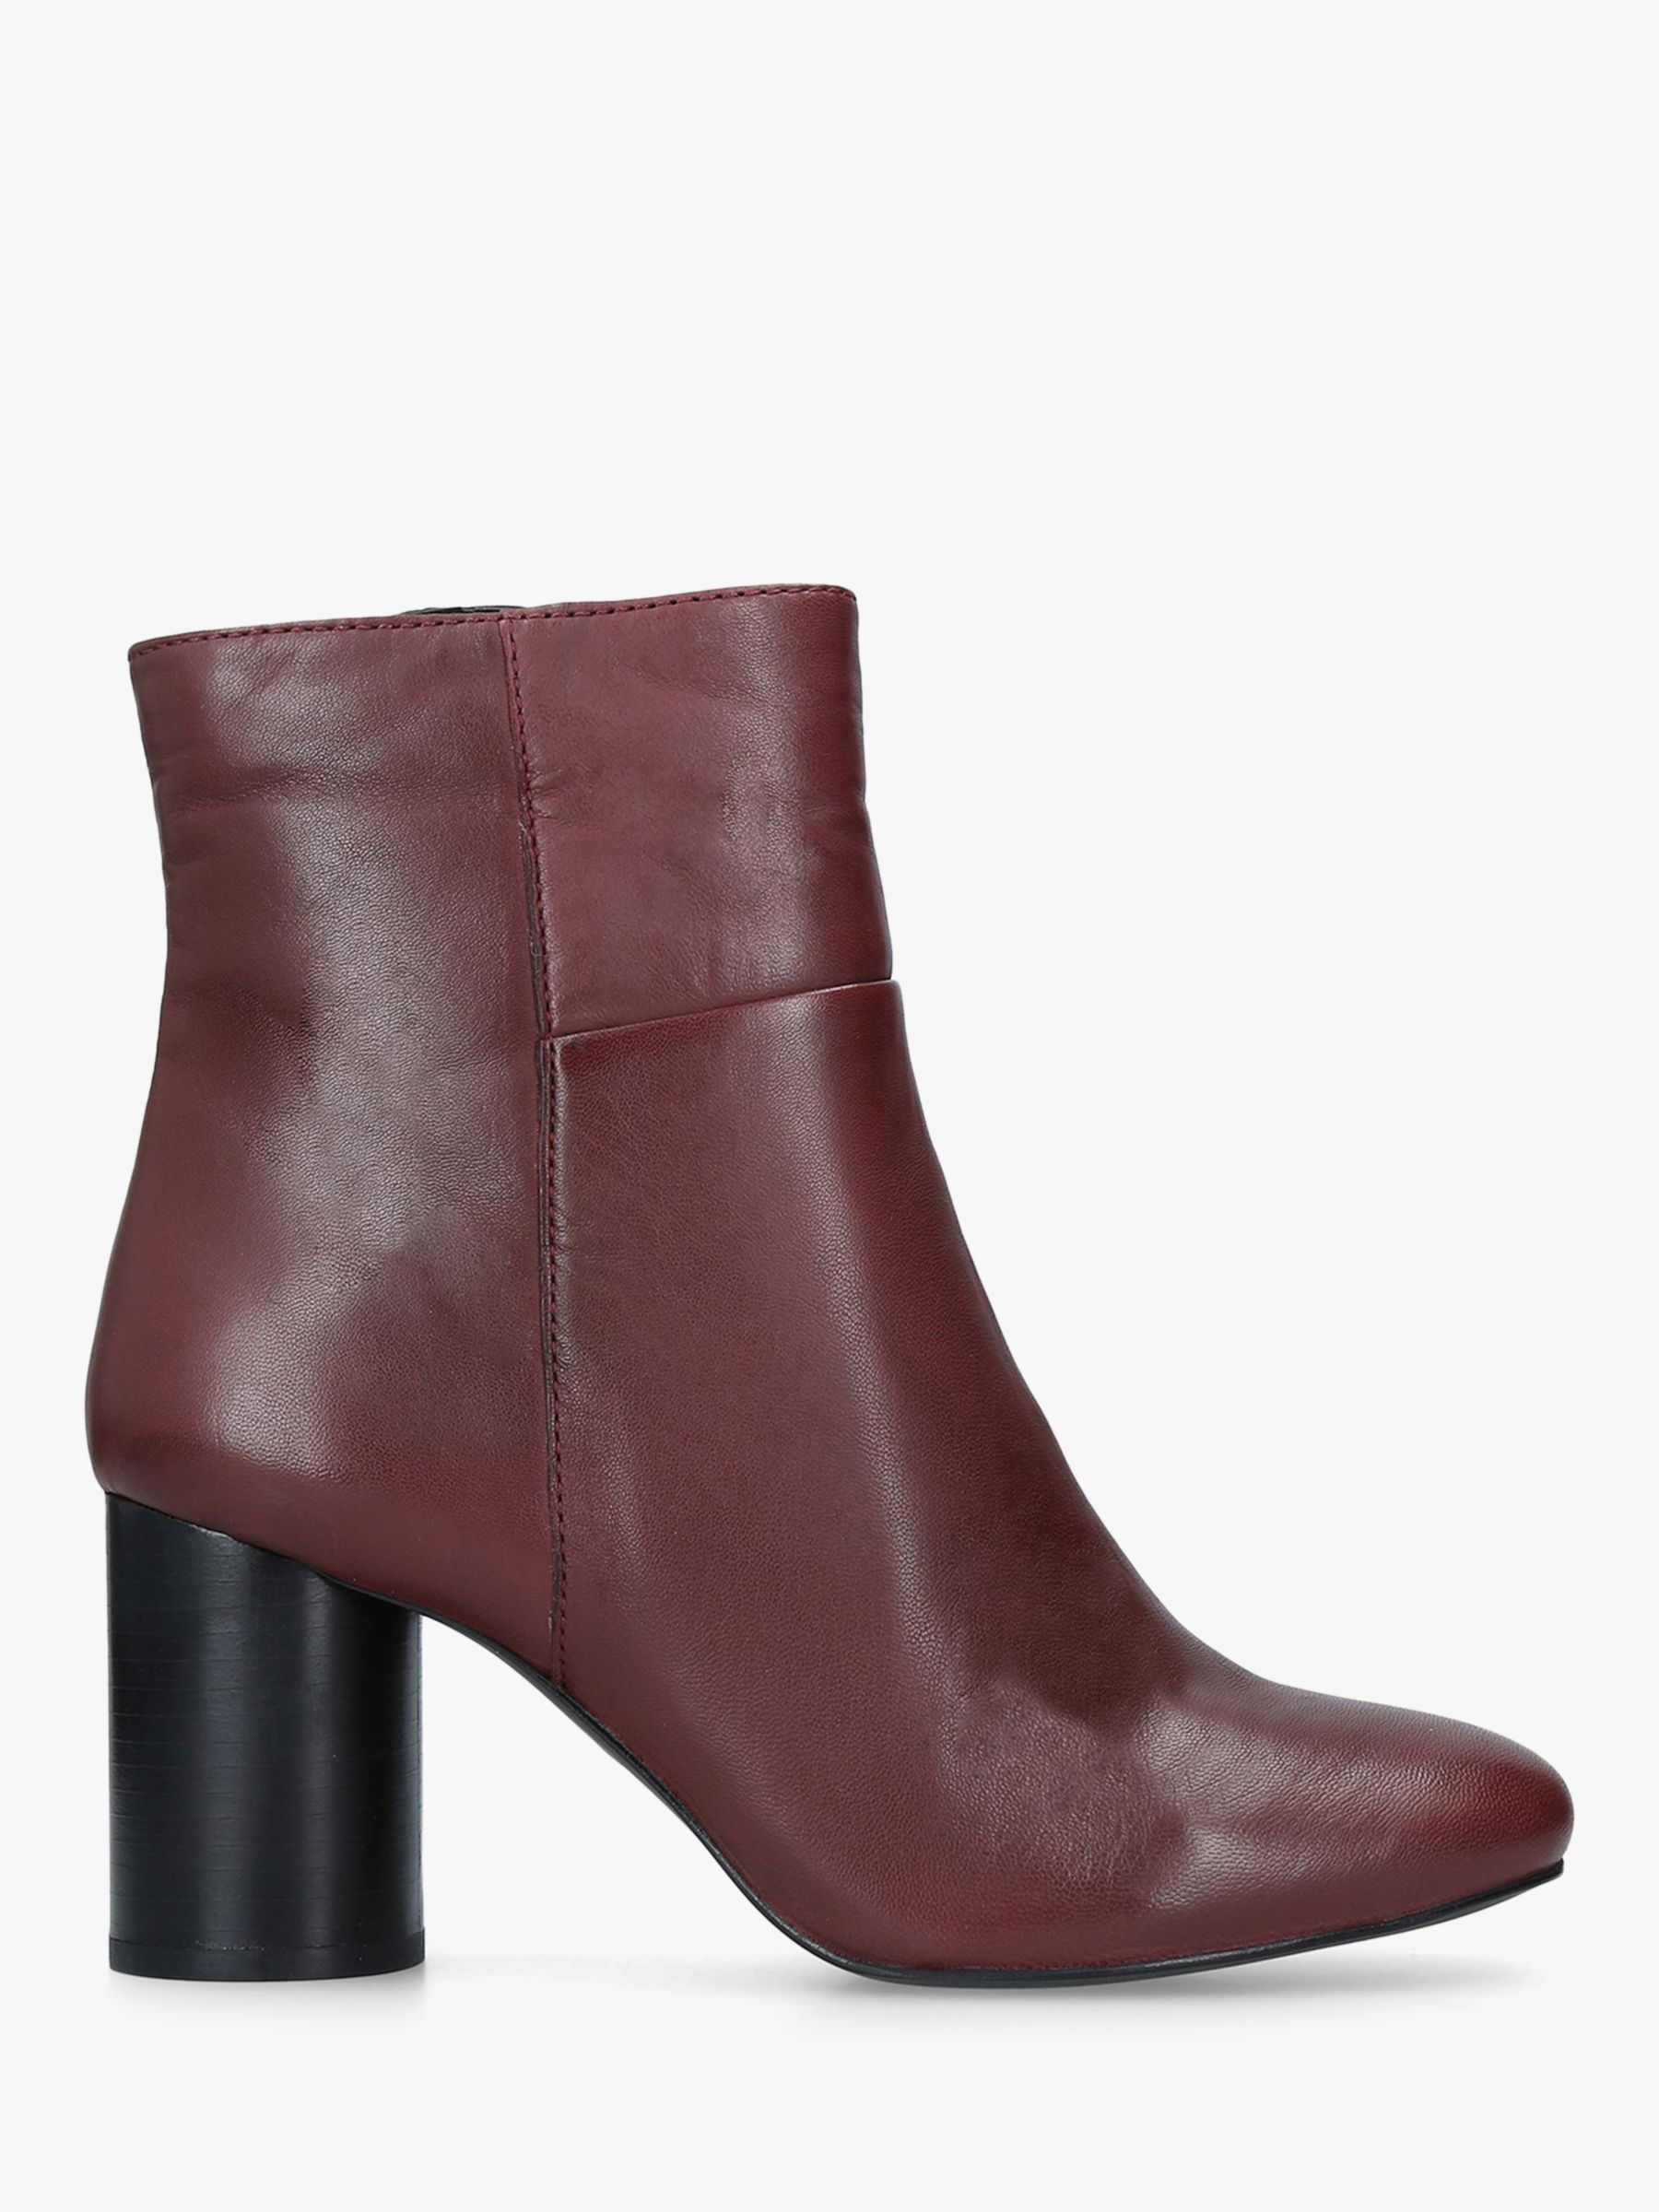 ddcac7713b5 Carvela Pop Leather Heeled Ankle Boots at John Lewis & Partners